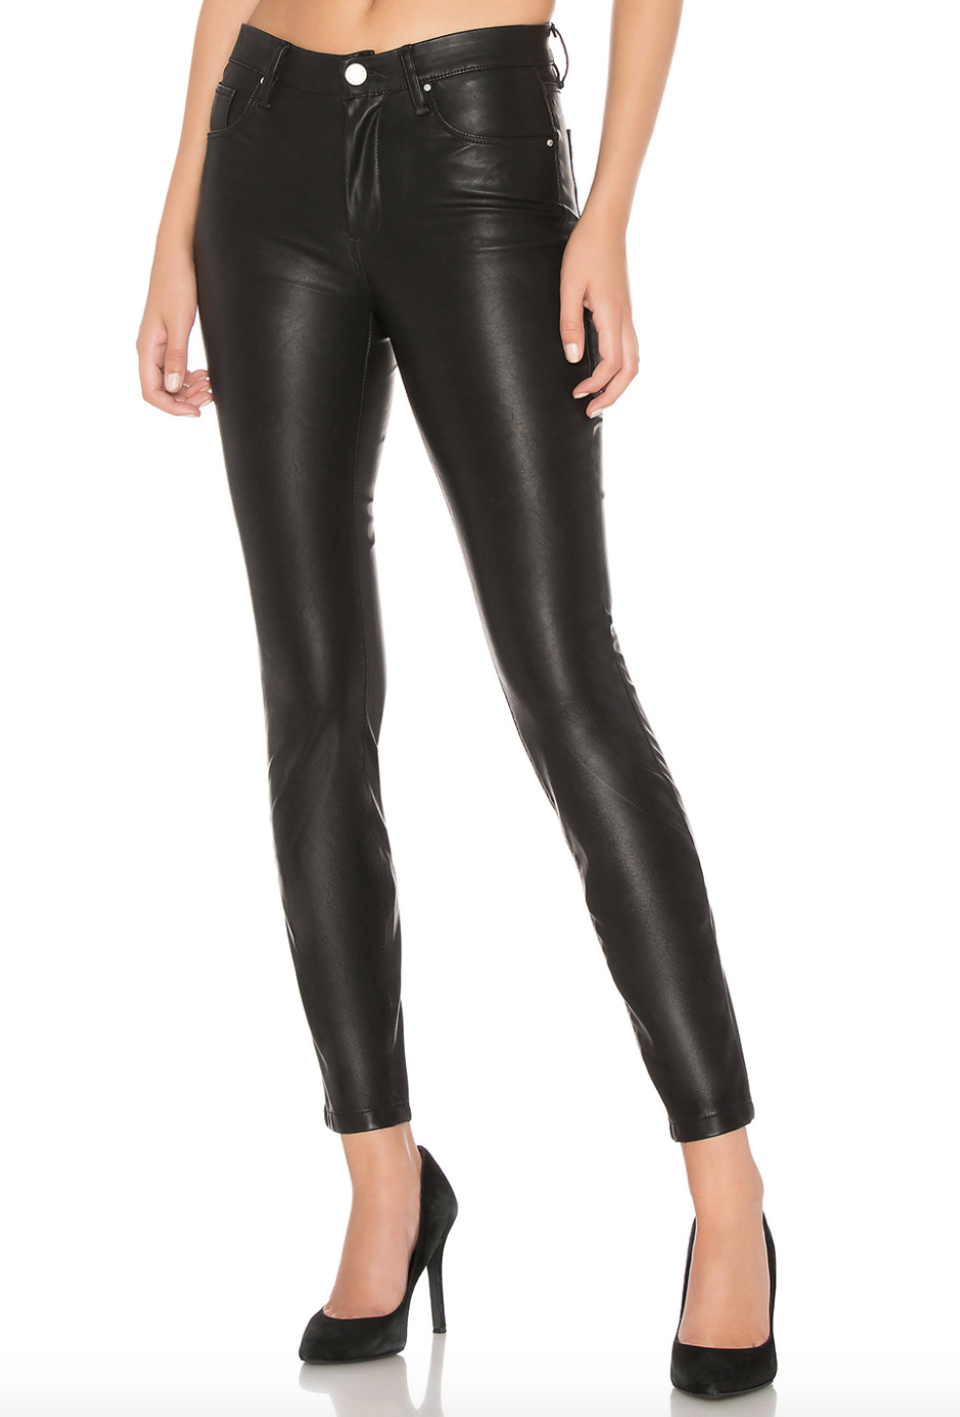 BlankNYC Vegan Leather Pant - Revolve, $98.